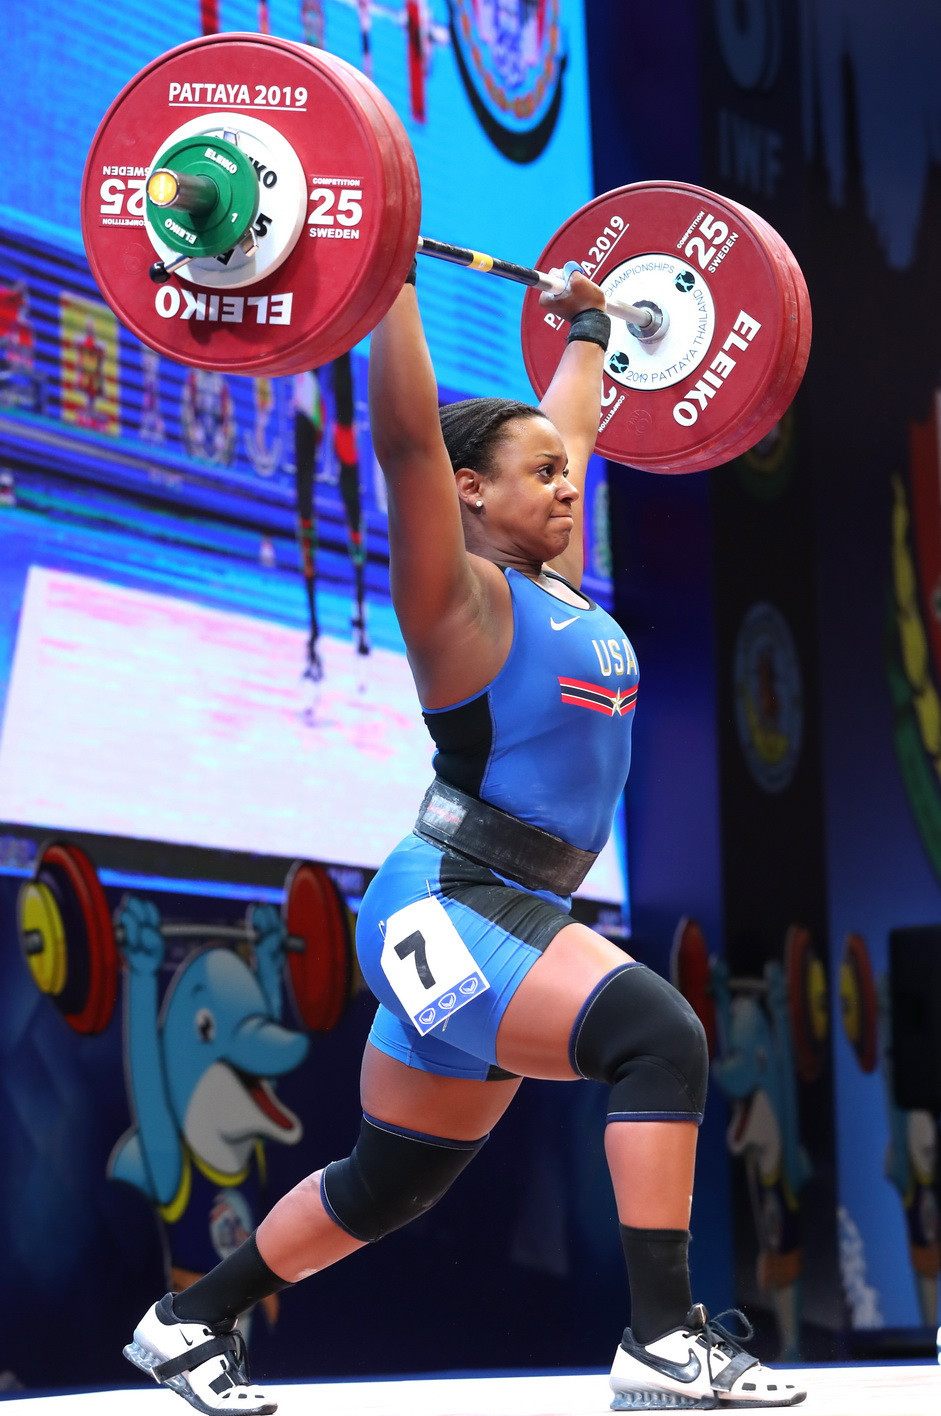 The United States' Jenny Arthur was the overall bronze medallist ©IWF